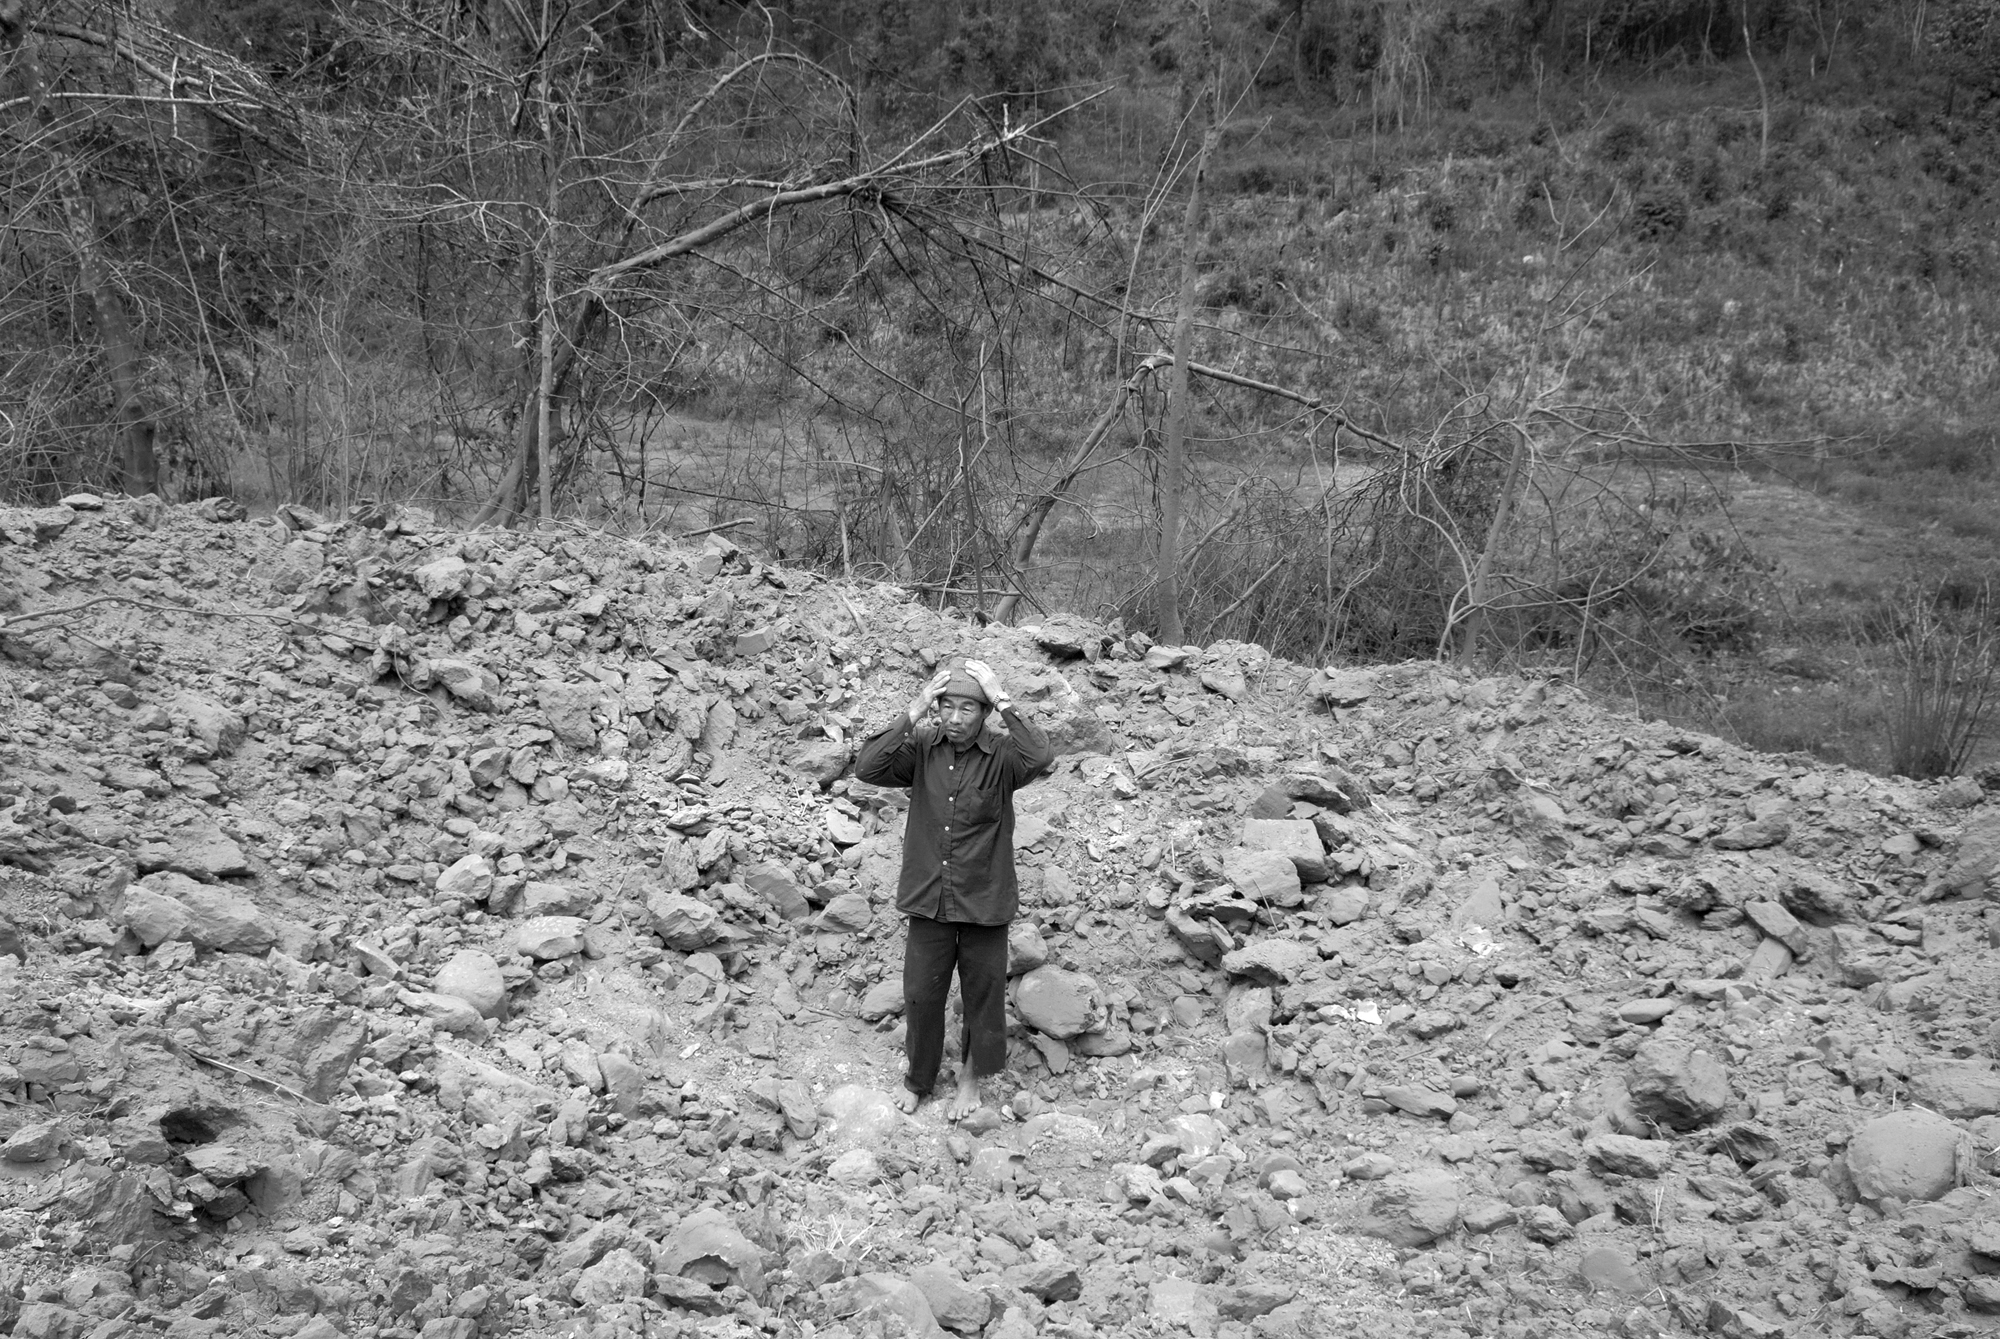 A local man clasps his head in disbelief as he stands in the massive new crater left by a 750-pound American bomb, in rural Phongsali Province, Laos. A bomb disposal group destroyed the bomb which was found by local girl clearing land for a new garden.